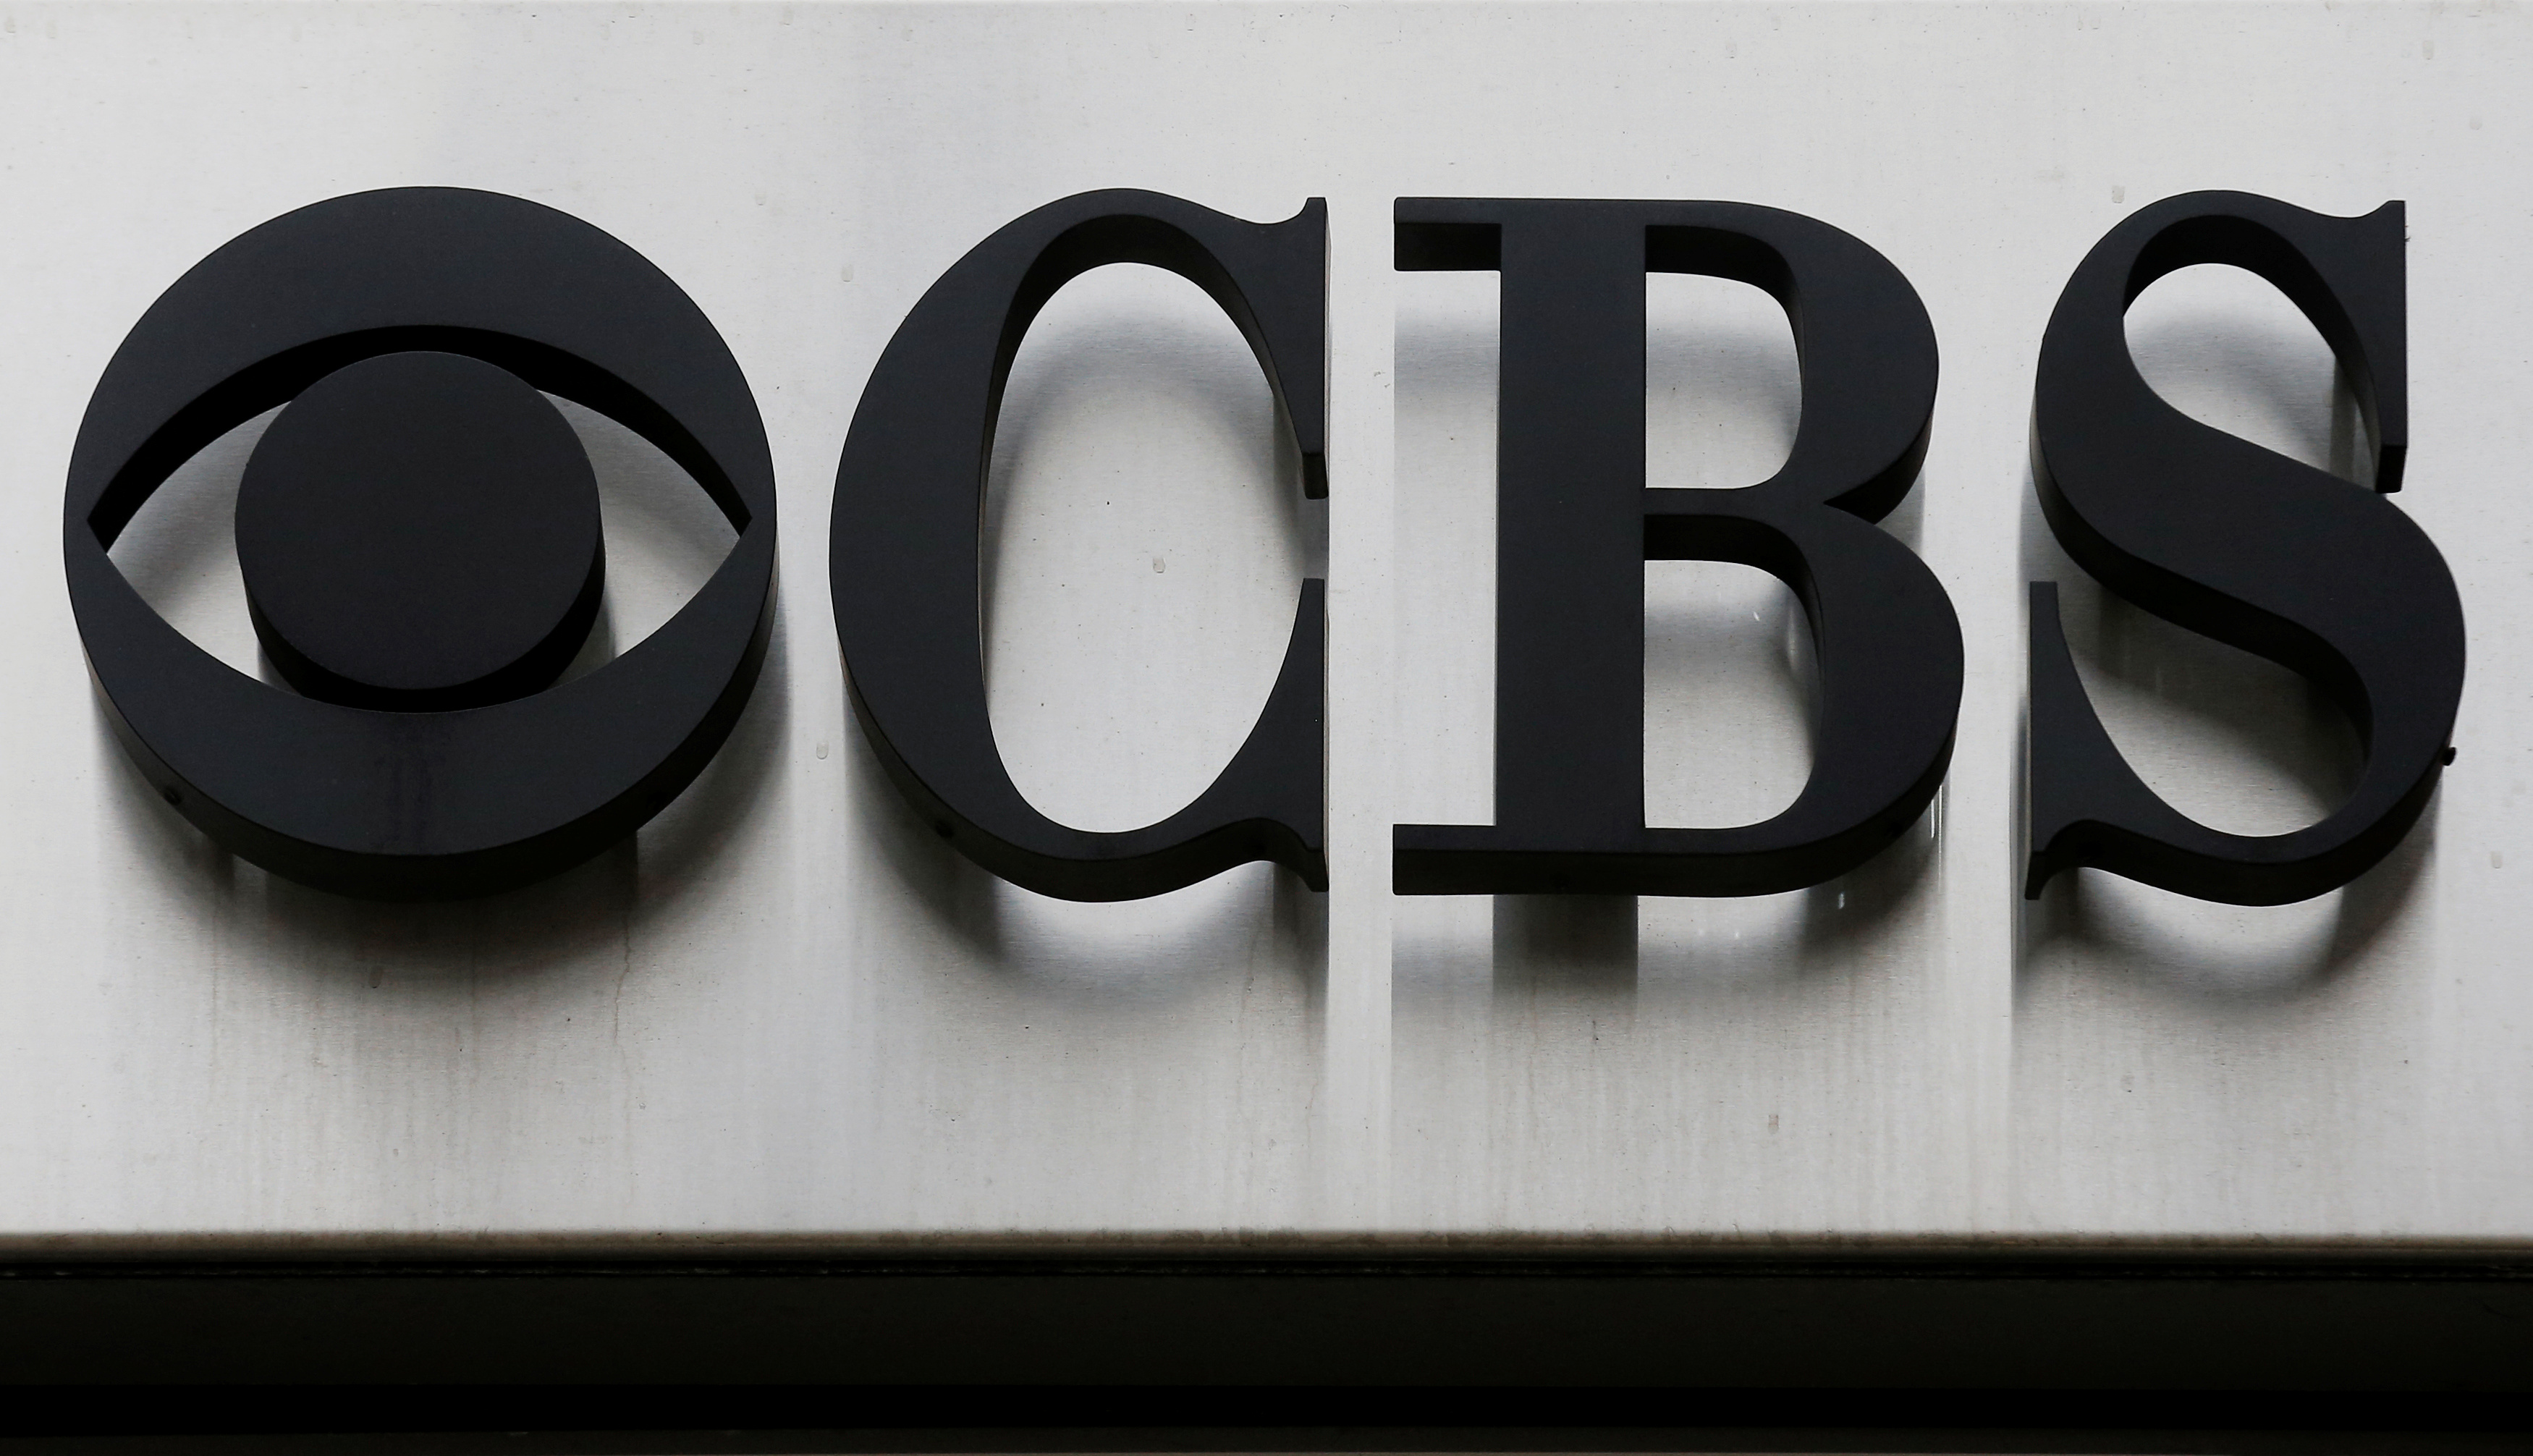 Cbs Can Be Much More Generous With Viacom Breakingviews